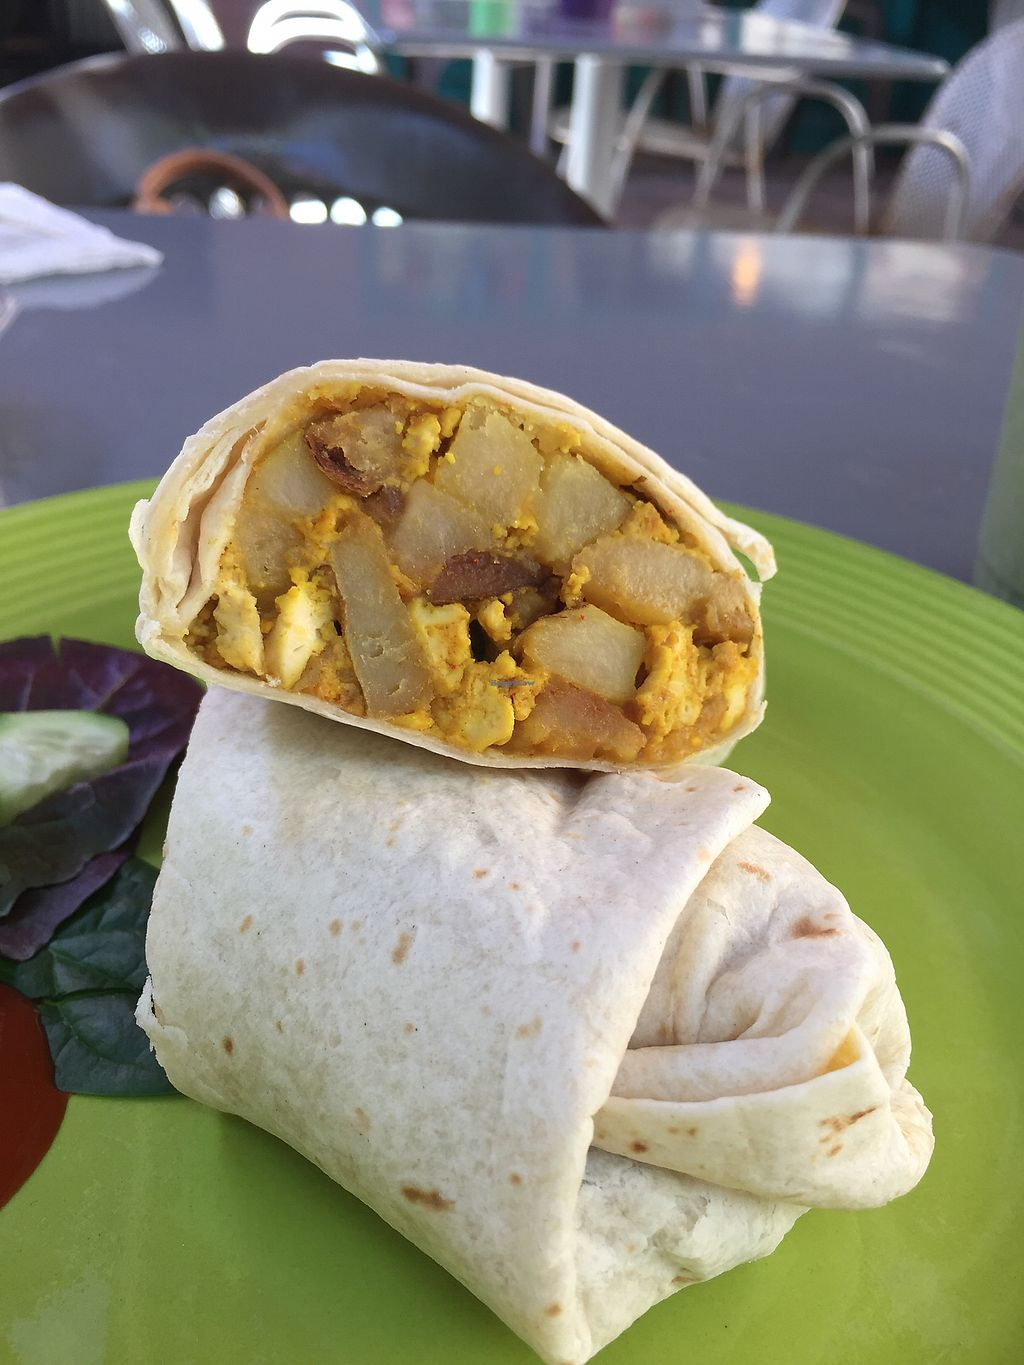 "Photo of Desert Roots Kitchen  by <a href=""/members/profile/plantbaseddfw"">plantbaseddfw</a> <br/>Break burrito  <br/> March 28, 2018  - <a href='/contact/abuse/image/9333/377113'>Report</a>"